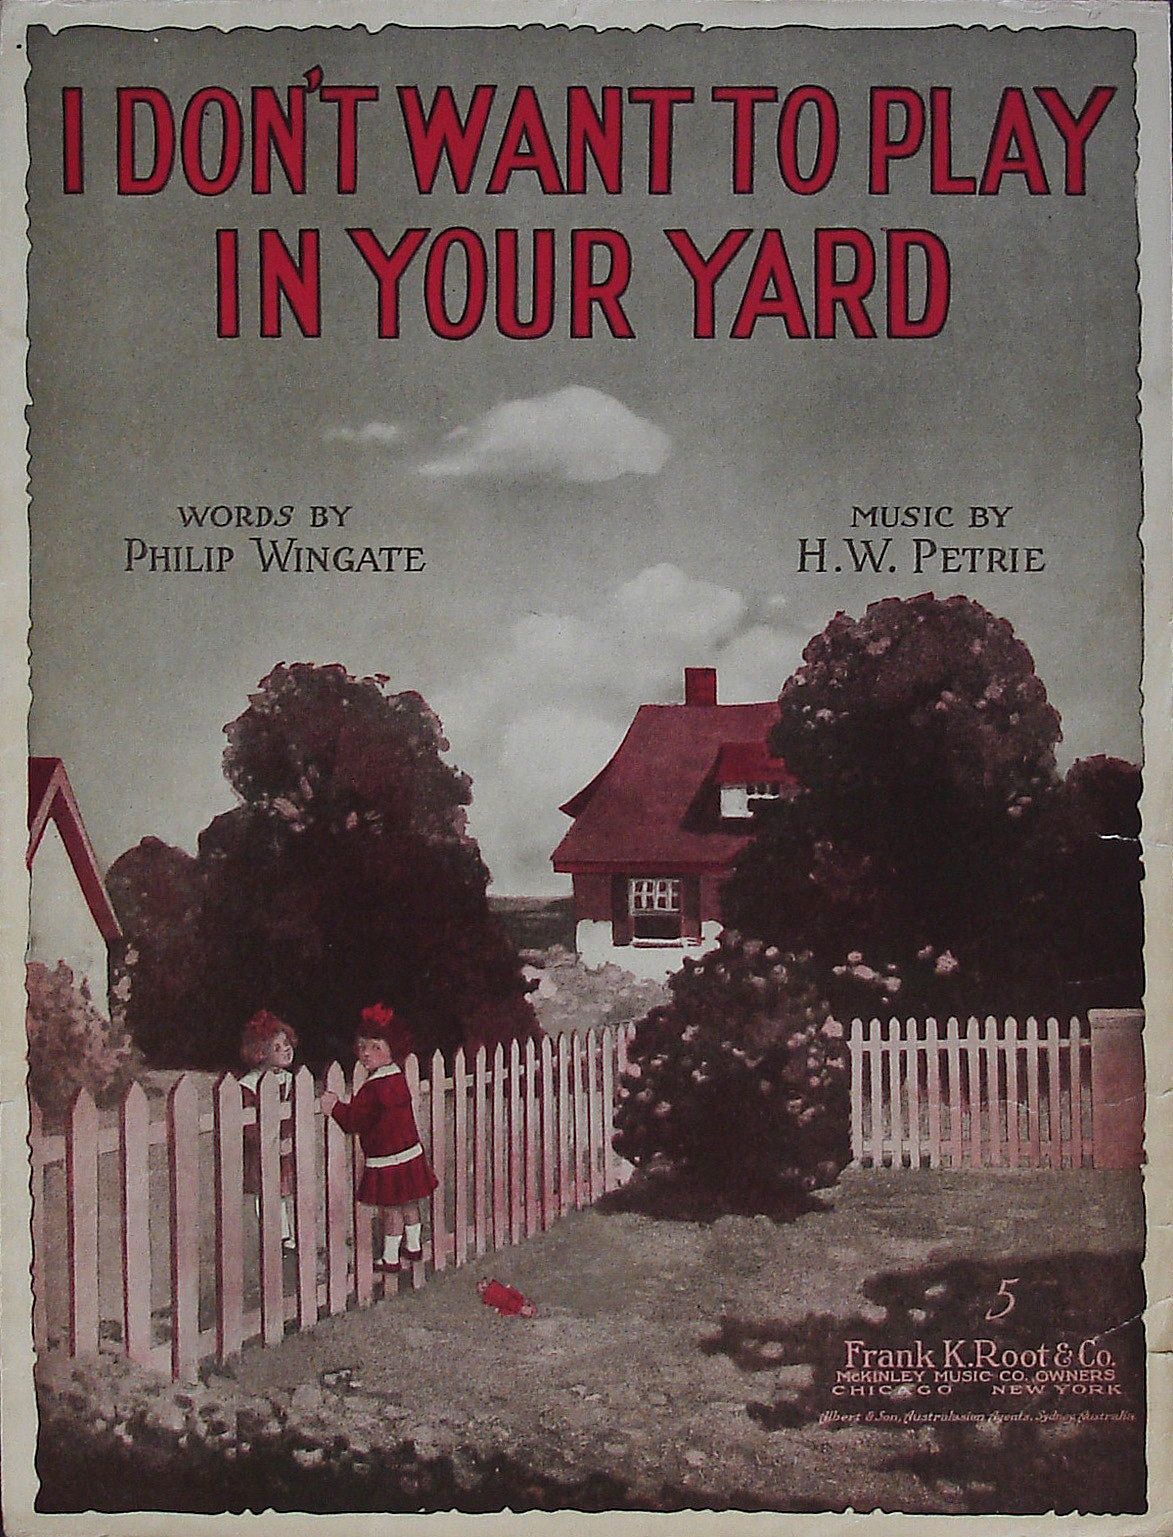 I Don't Want to Play in Your Yard - Philip Wingate, H. W. Petrie - Large Format